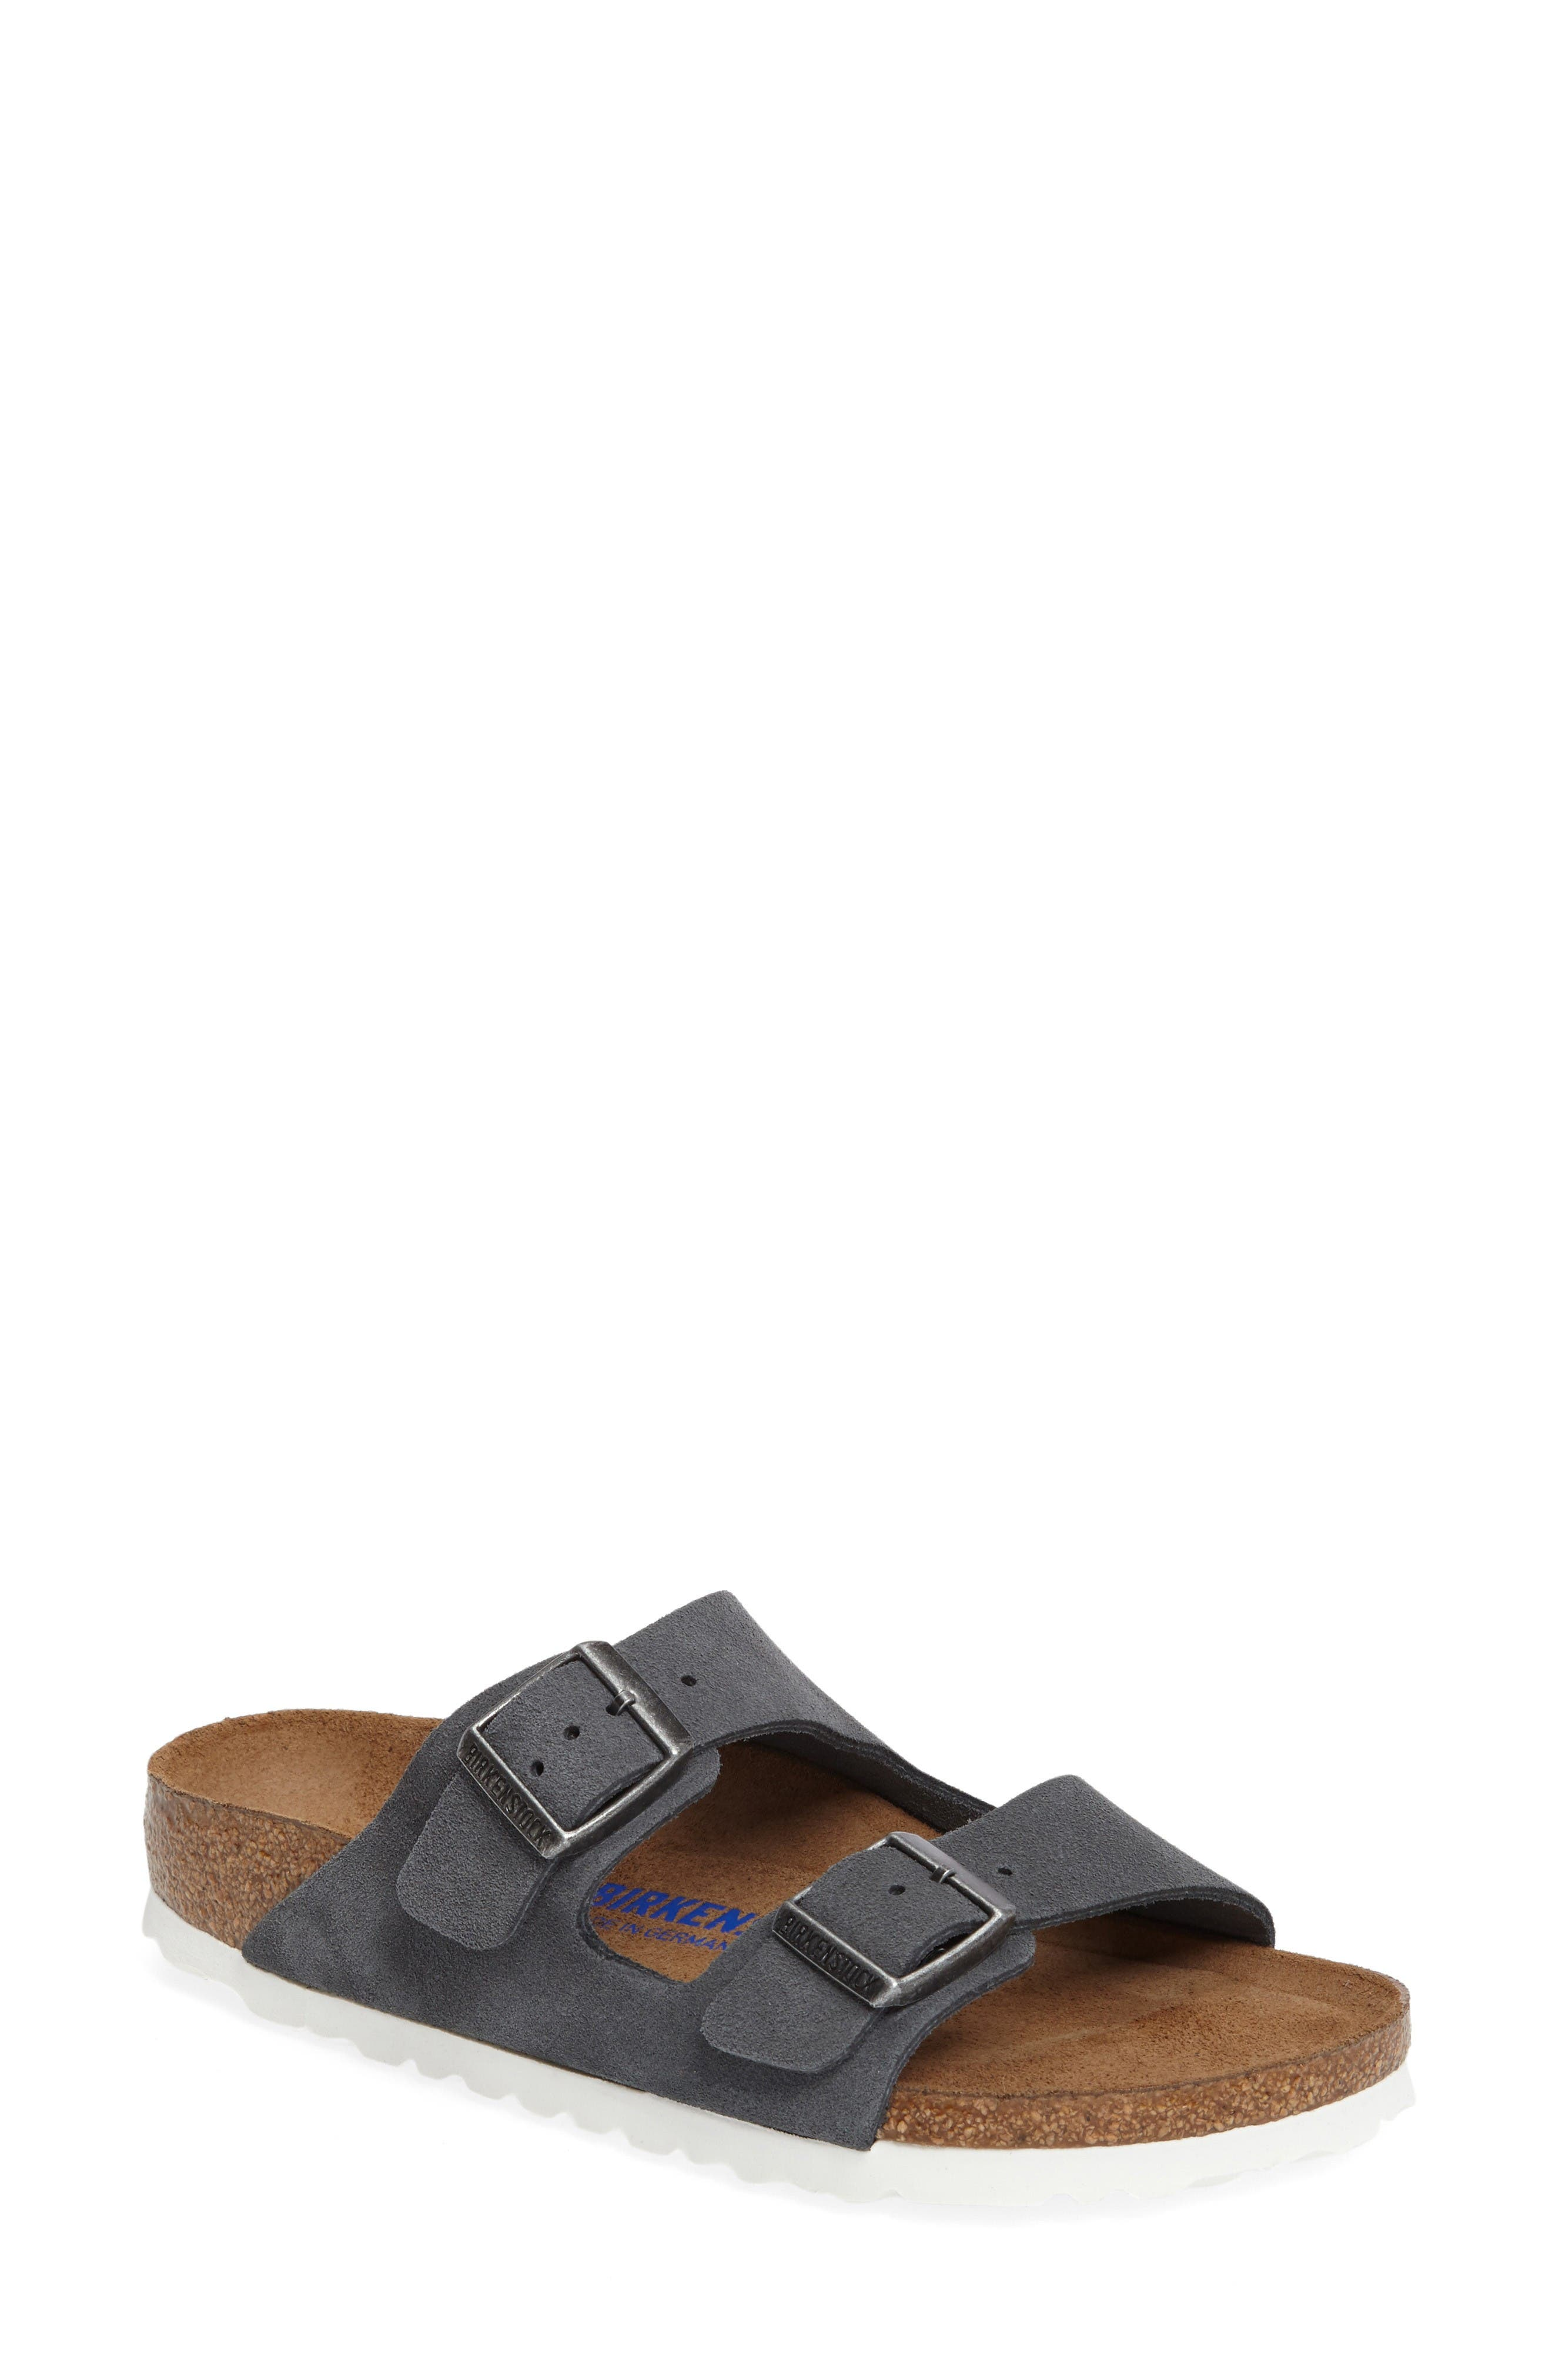 BIRKENSTOCK Arizona Birko-Flor Soft Footbed Slide Sandal